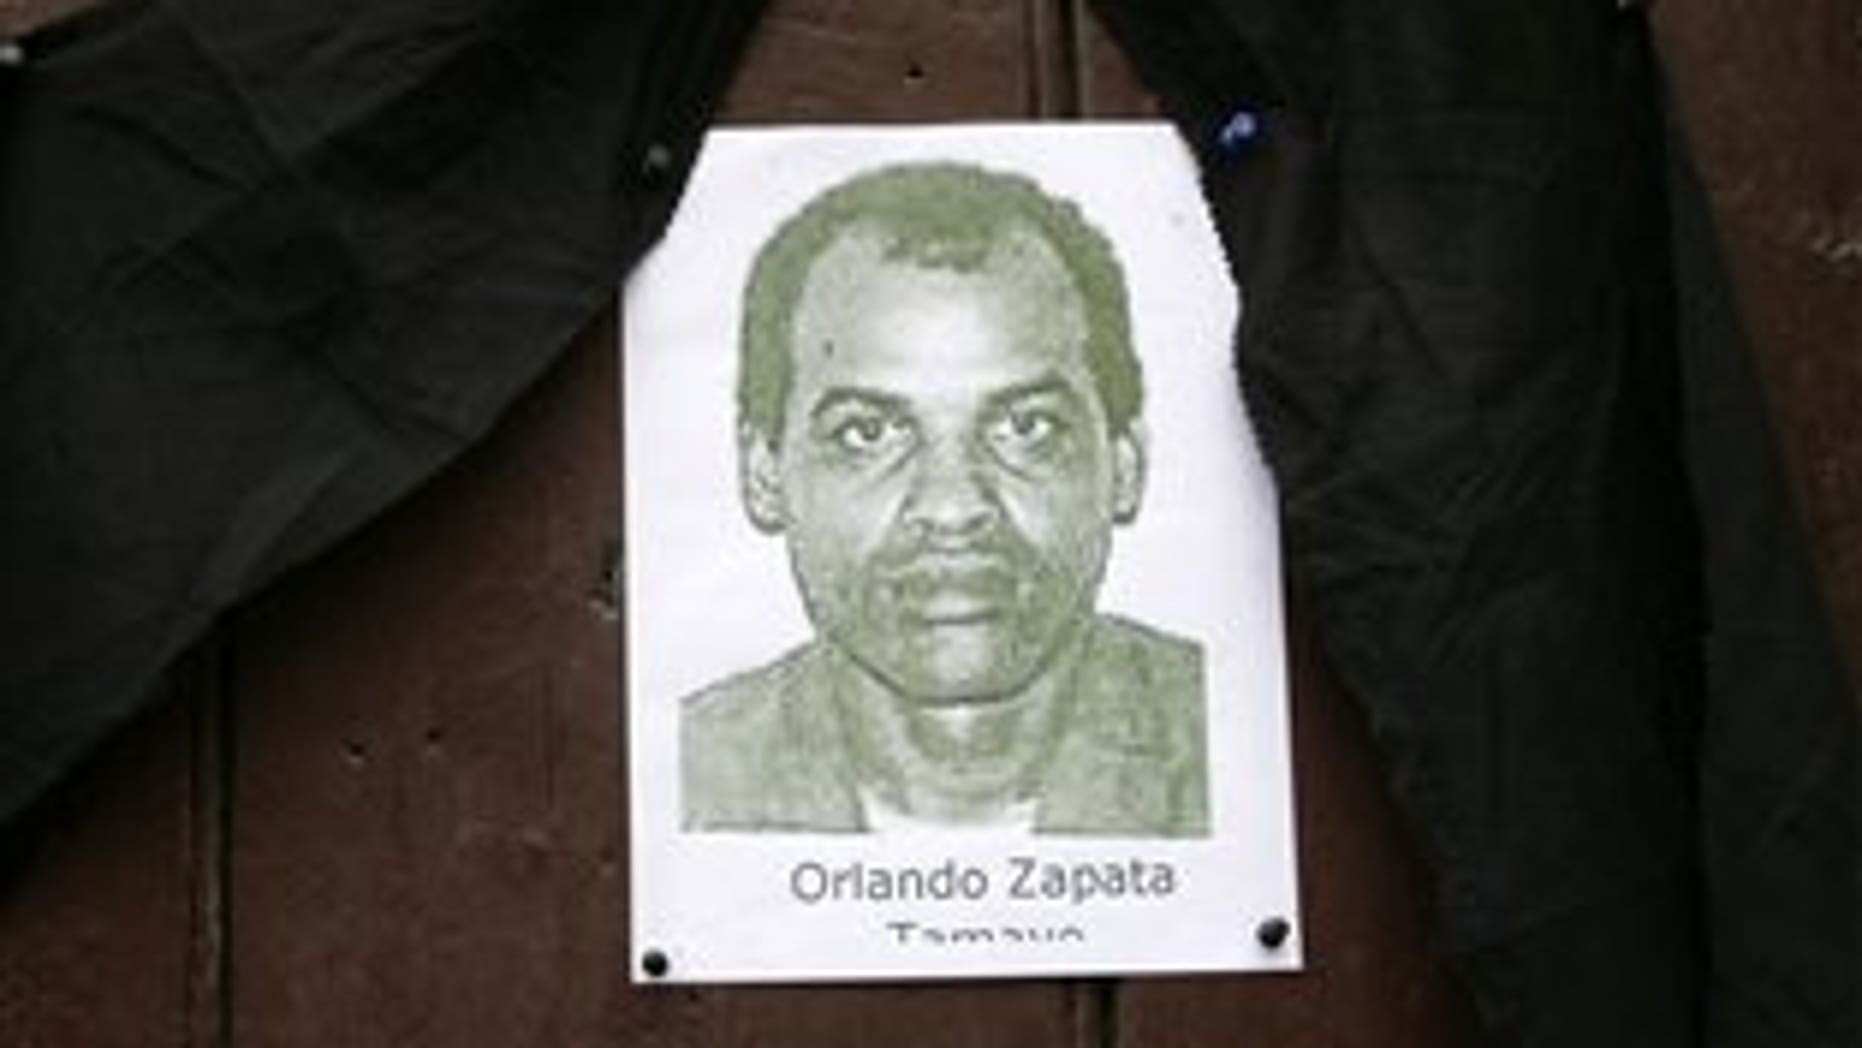 FILE - In this Feb. 24, 2010 file photo, an image of the late Cuban dissident Orlando Zapata Tamayo hangs on a door under a black ribbon in Havana, Cuba. The remains of Tamayo, who died on February 23, 2010 following an 83-day hunger strike, have been exhumed for cremation. Tamayo's mother intends to take the ashes with her on Thursday June 9, 2011 to the United States, which granted her political refuge. (AP Photo/Franklin Reyes, File)